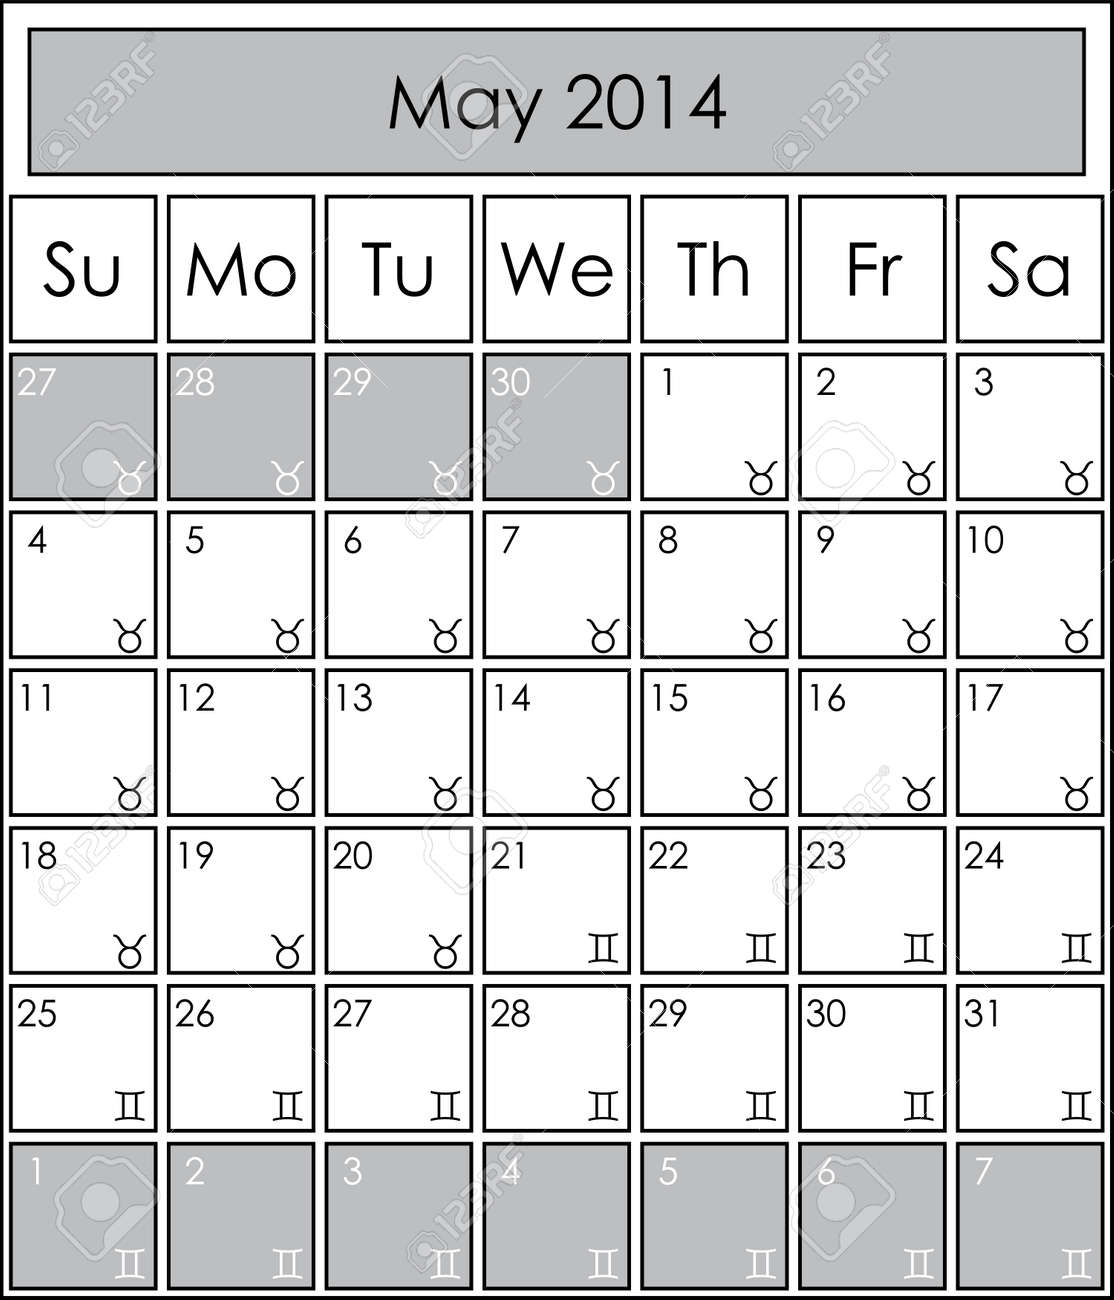 2014 Calendar Monthly May With Zodiac Signs Royalty Free Cliparts